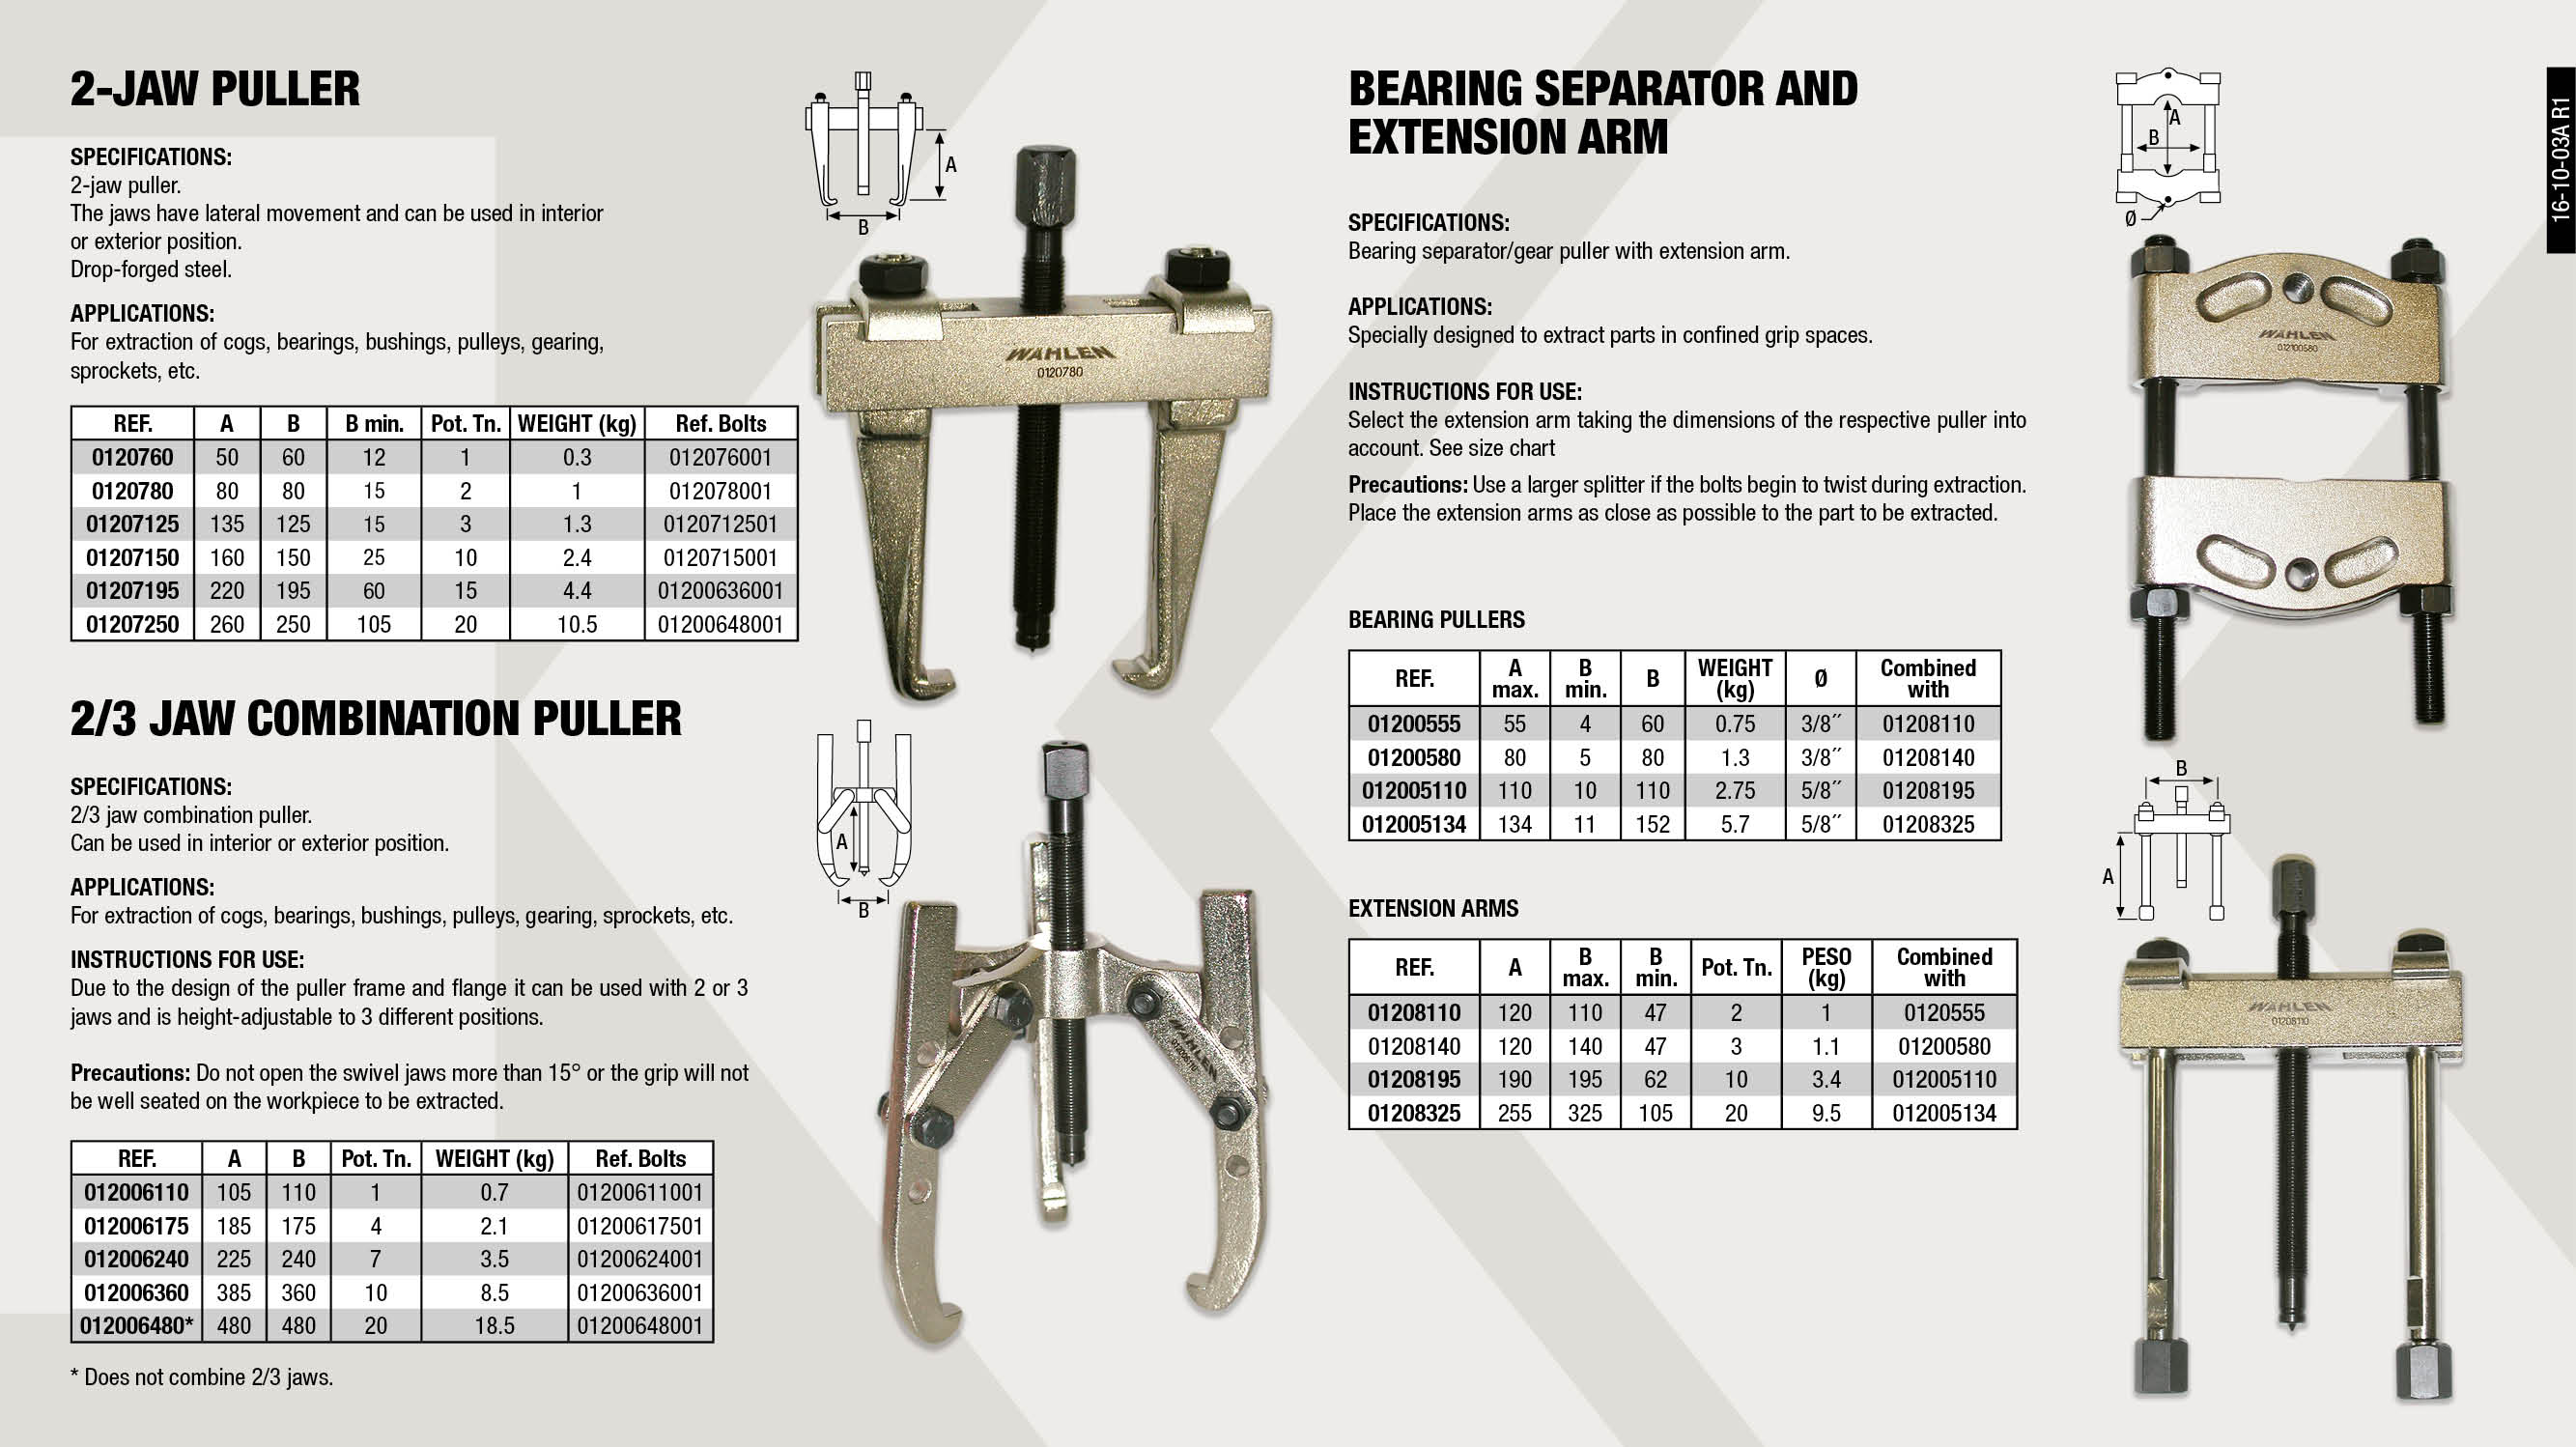 SWAYING JAWS PULLER 185X175MM                               ,  									2 FIXED JAWS PULLER 50X60 MM                                ,  									2 FIXED JAWS PULLER 220X195MM                               ,  									PULLING BOLT 012006360-01207195                             ,  									PULLING BOLT 012006480-01207250                             ,  									BEARING PULLER 80X80                                        ,  									SWAYING JAWS PULLER 105X110MM                               ,  									PUSH PULLER EXTENDER 190X195 MM                             ,  									PULLER BEARING PULLER 152X134                               ,  									BEARING PULLER 60X55                                        ,  									BEARING PULLER 110X110                                      ,  									2 FIXED JAWS PULLER 80X80MM                                 ,  									PULLING BOLT 012006240                                      ,  									PULLING BOLT 0120760                                        ,  									SWAYING JAWS PULLER 385X360 MM                              ,  									PULLING BOLT 012006110                                      ,  									PUSH PULLER EXTENDER 255X325 TRUCK                          ,  									SWAYING JAWS PULLER 480X480 MM                              ,  									PULLING BOLT 012006175                                      ,  									PUSH PULLER EXTENDER 120X110MM                              ,  									2 FIXED JAWS PULLER 260X250 V.I.                            ,  									2 FIXED JAWS PULLER 160X150MM                               ,  									SWAYING JAWS PULLER 225X240 MM                              ,  									PUSH PULLER EXTENDER 120X140MM                              ,  									PULLING BOLT 01207150                                       ,  									2 FIXED JAWS PULLER 135X125MM                               ,  									PULLING BOLT 01207125                                       ,  									PULLING BOLT 0120780                                        ,